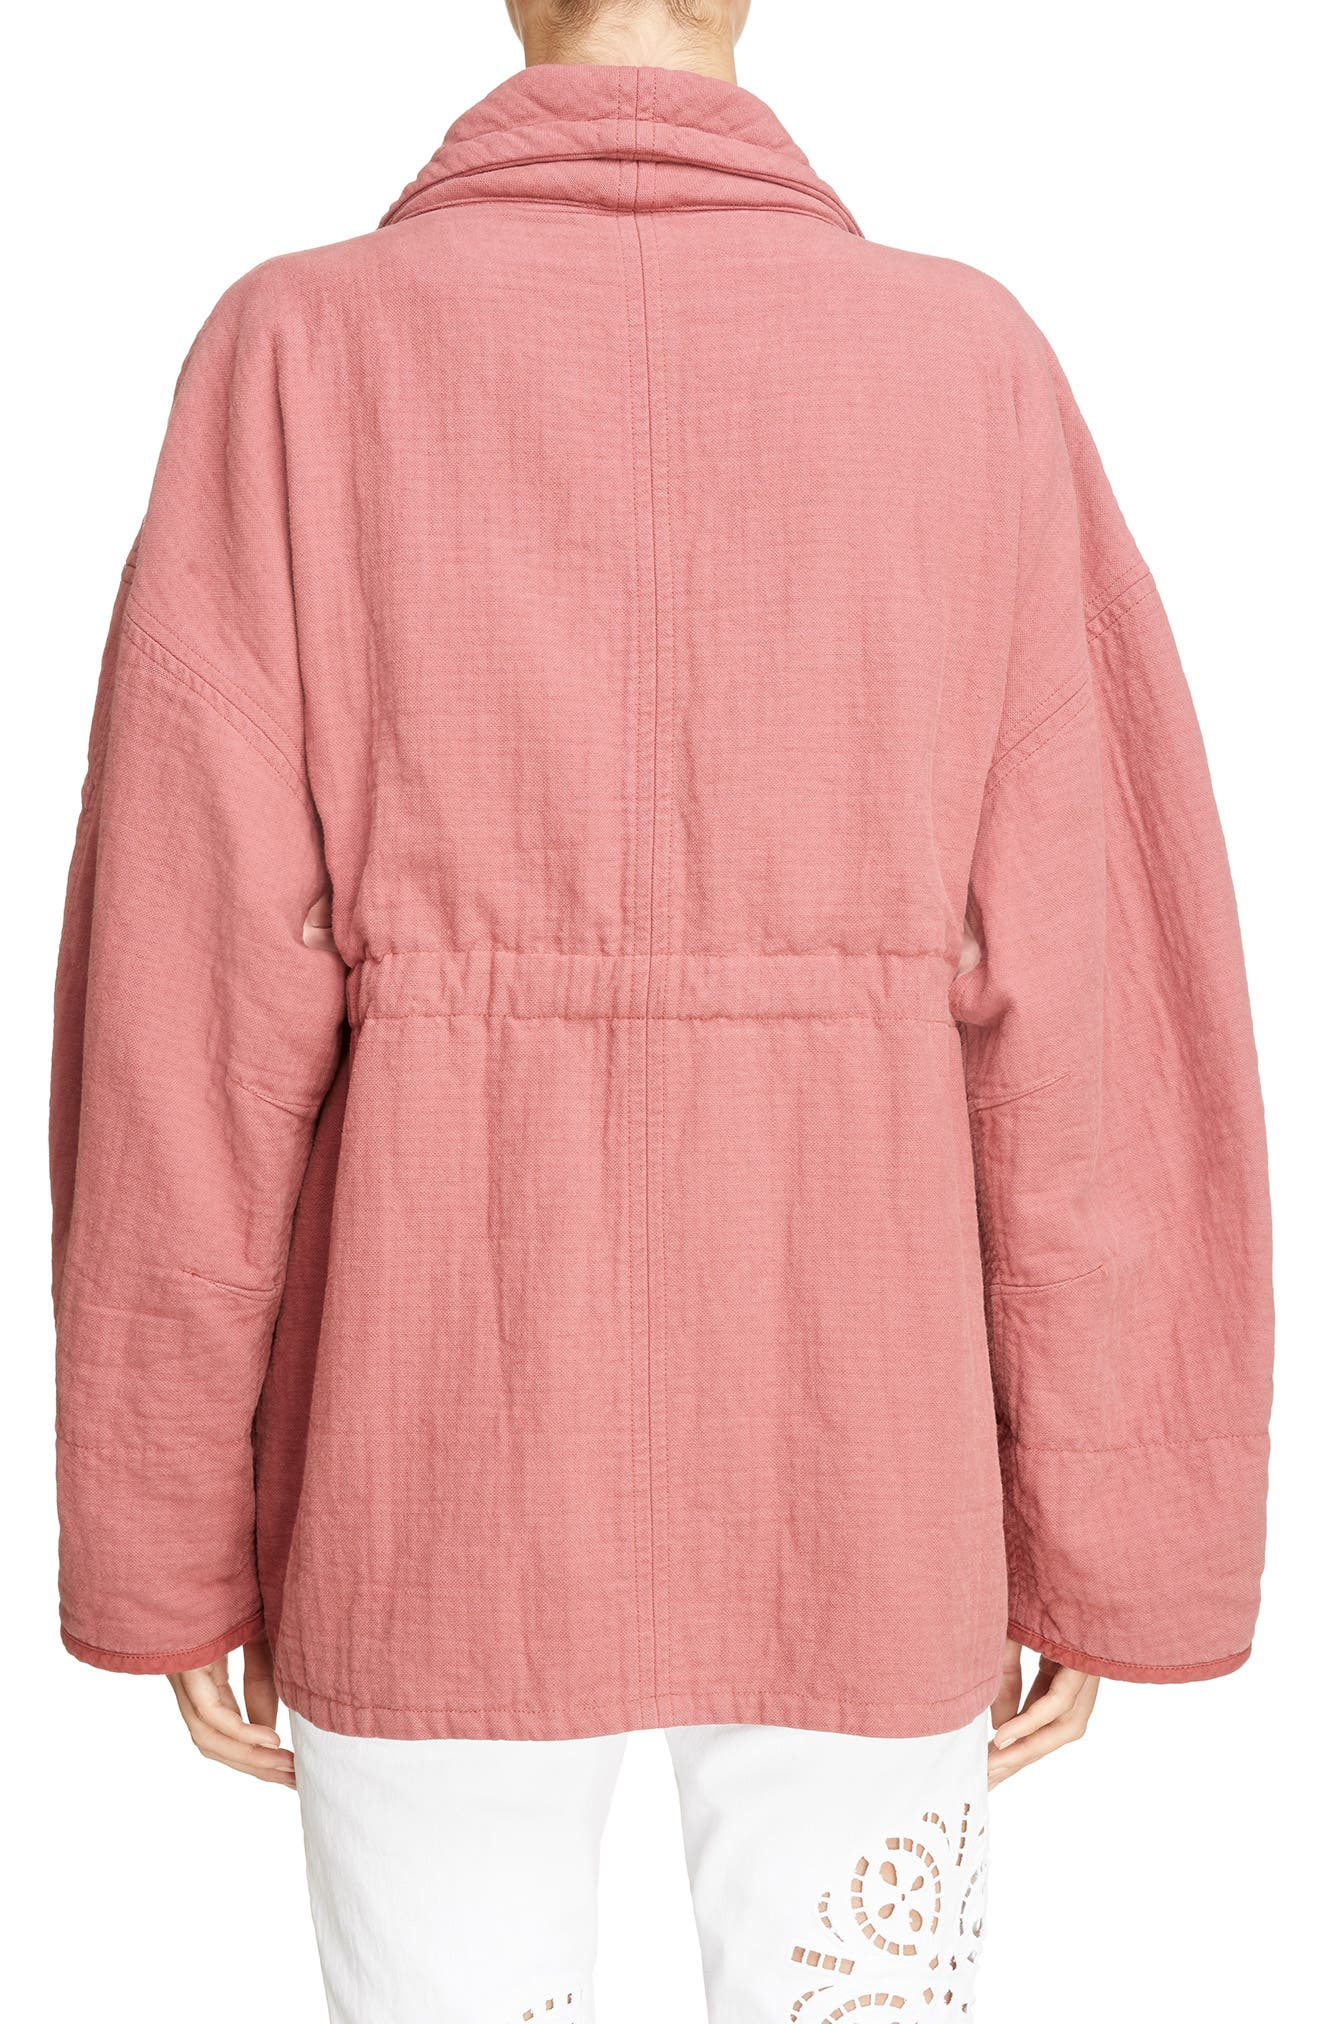 Oversize Textured Cotton Jacket,                             Alternate thumbnail 2, color,                             600